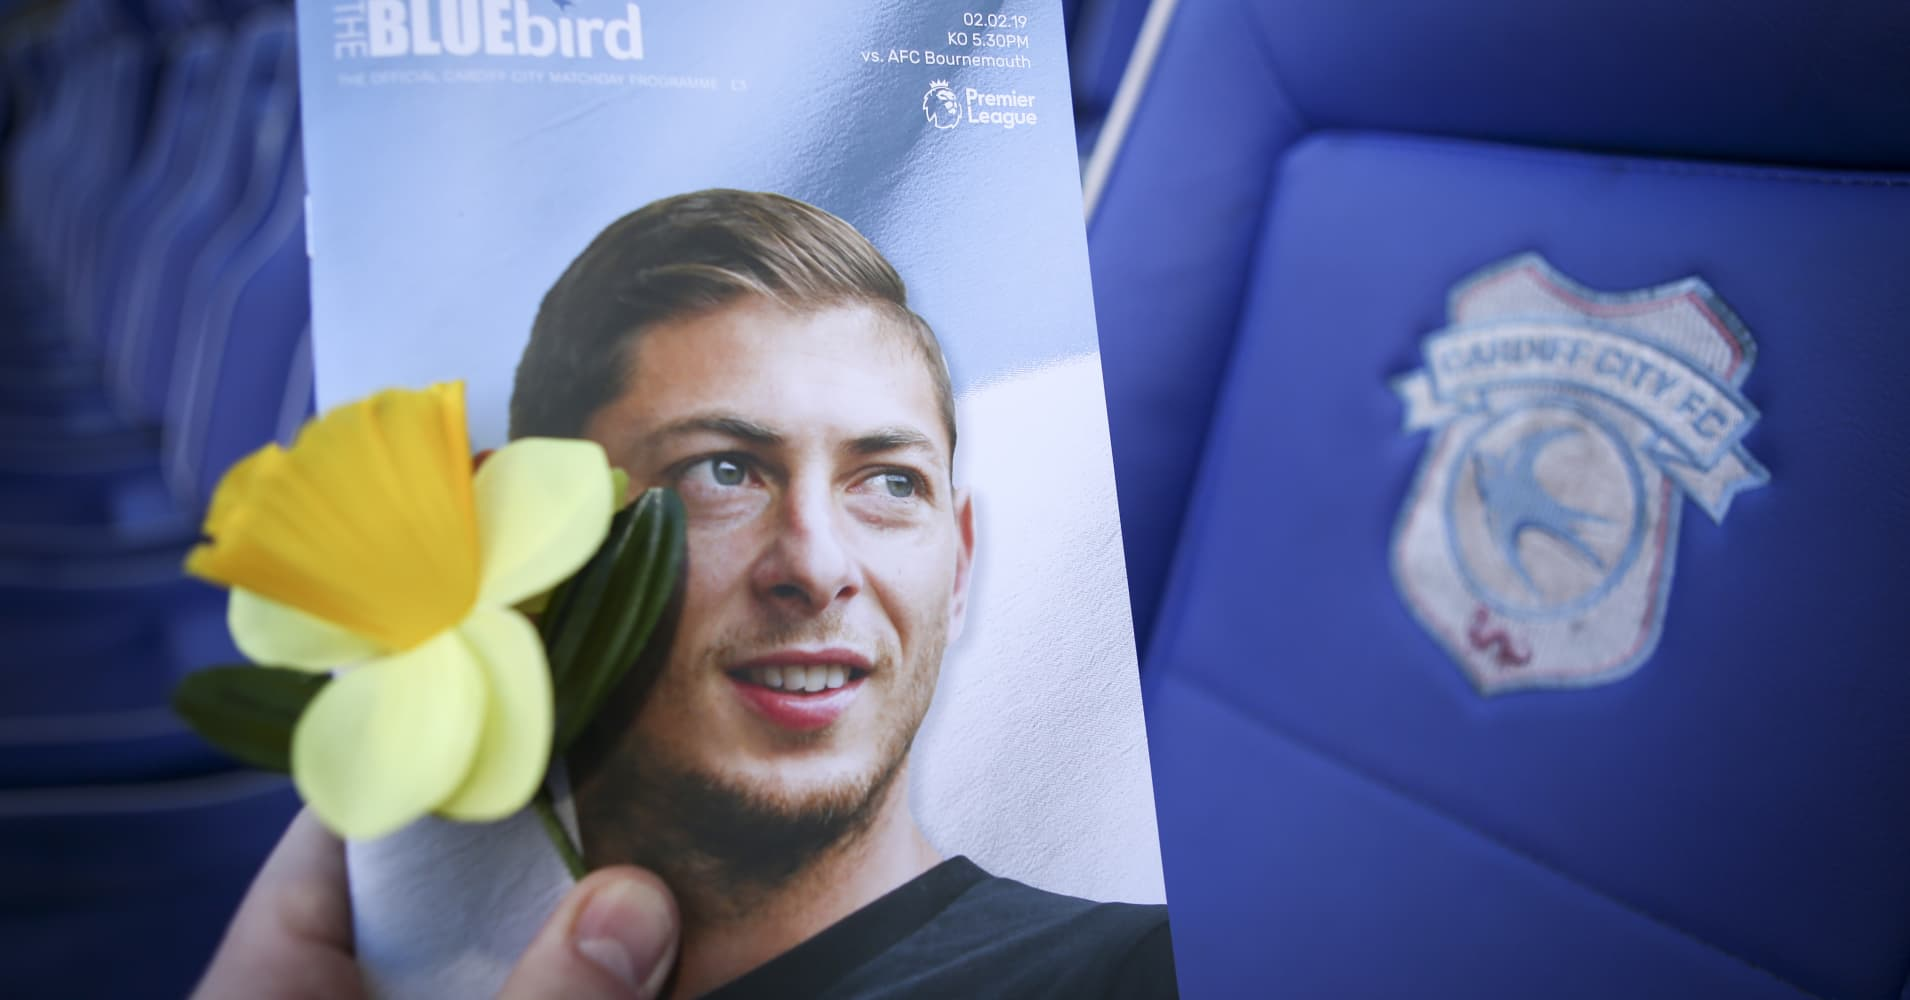 Body found in wreckage of plane carrying soccer player Sala, investigators say